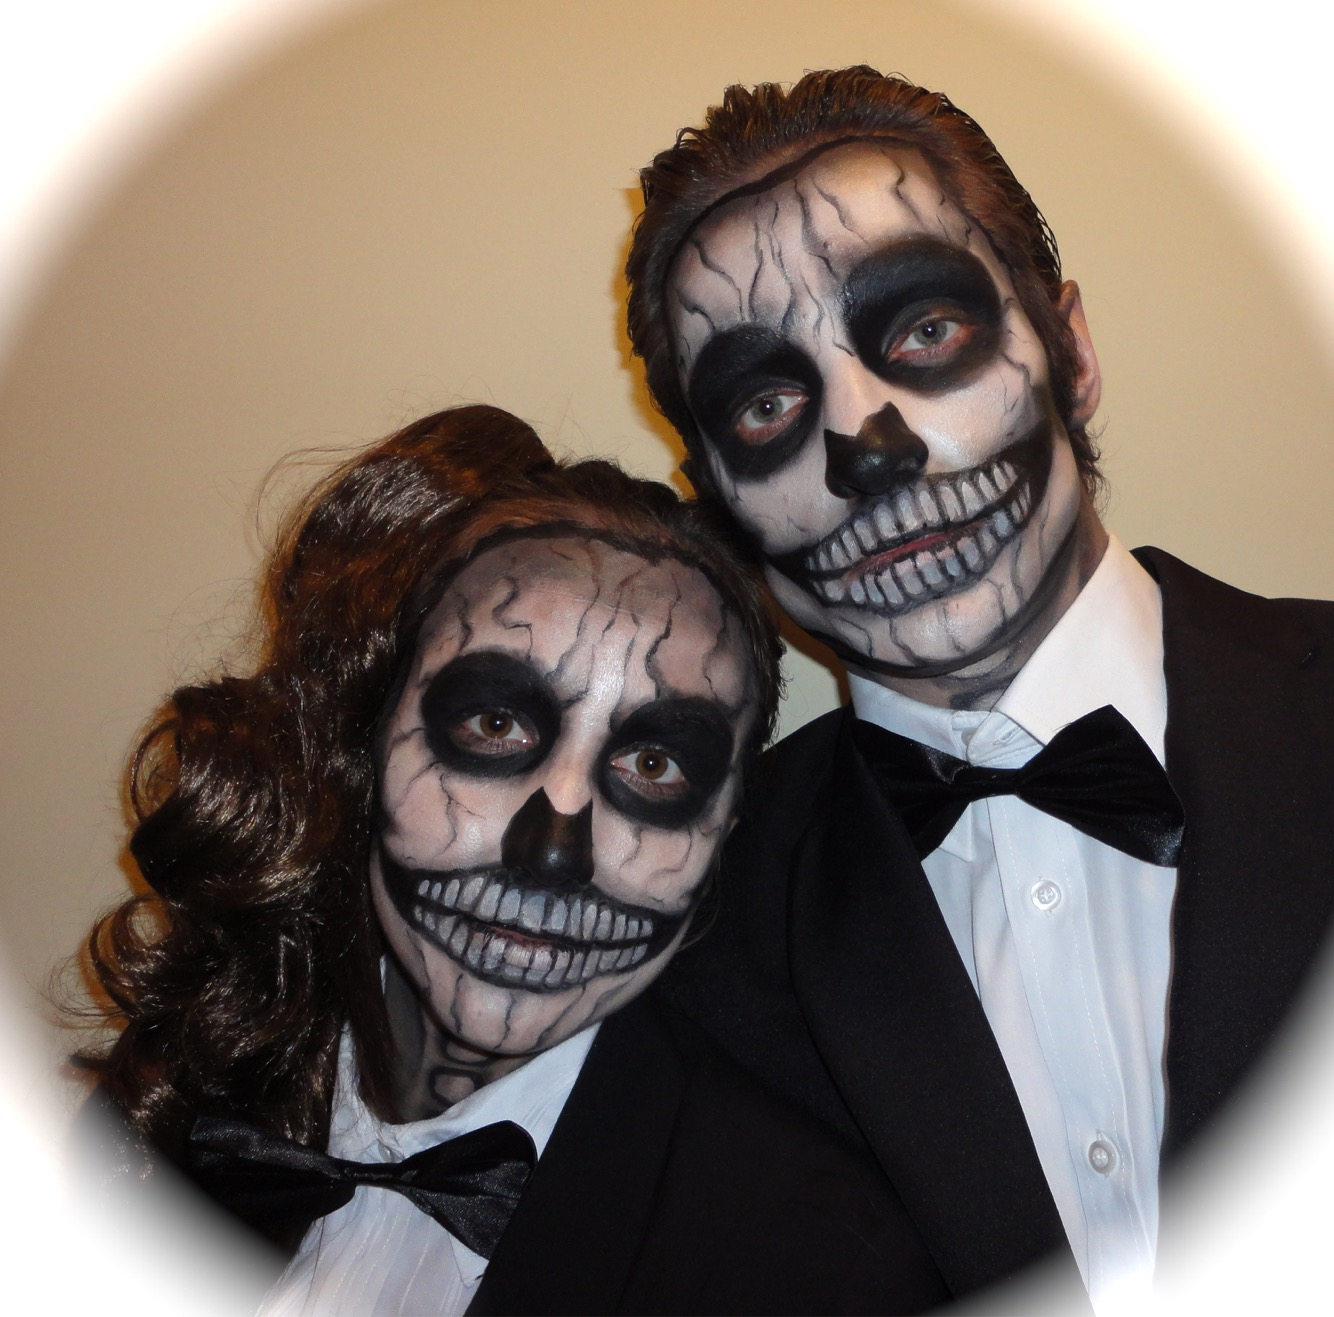 A Lady Gaga Halloween! So much fun painting this couple!!